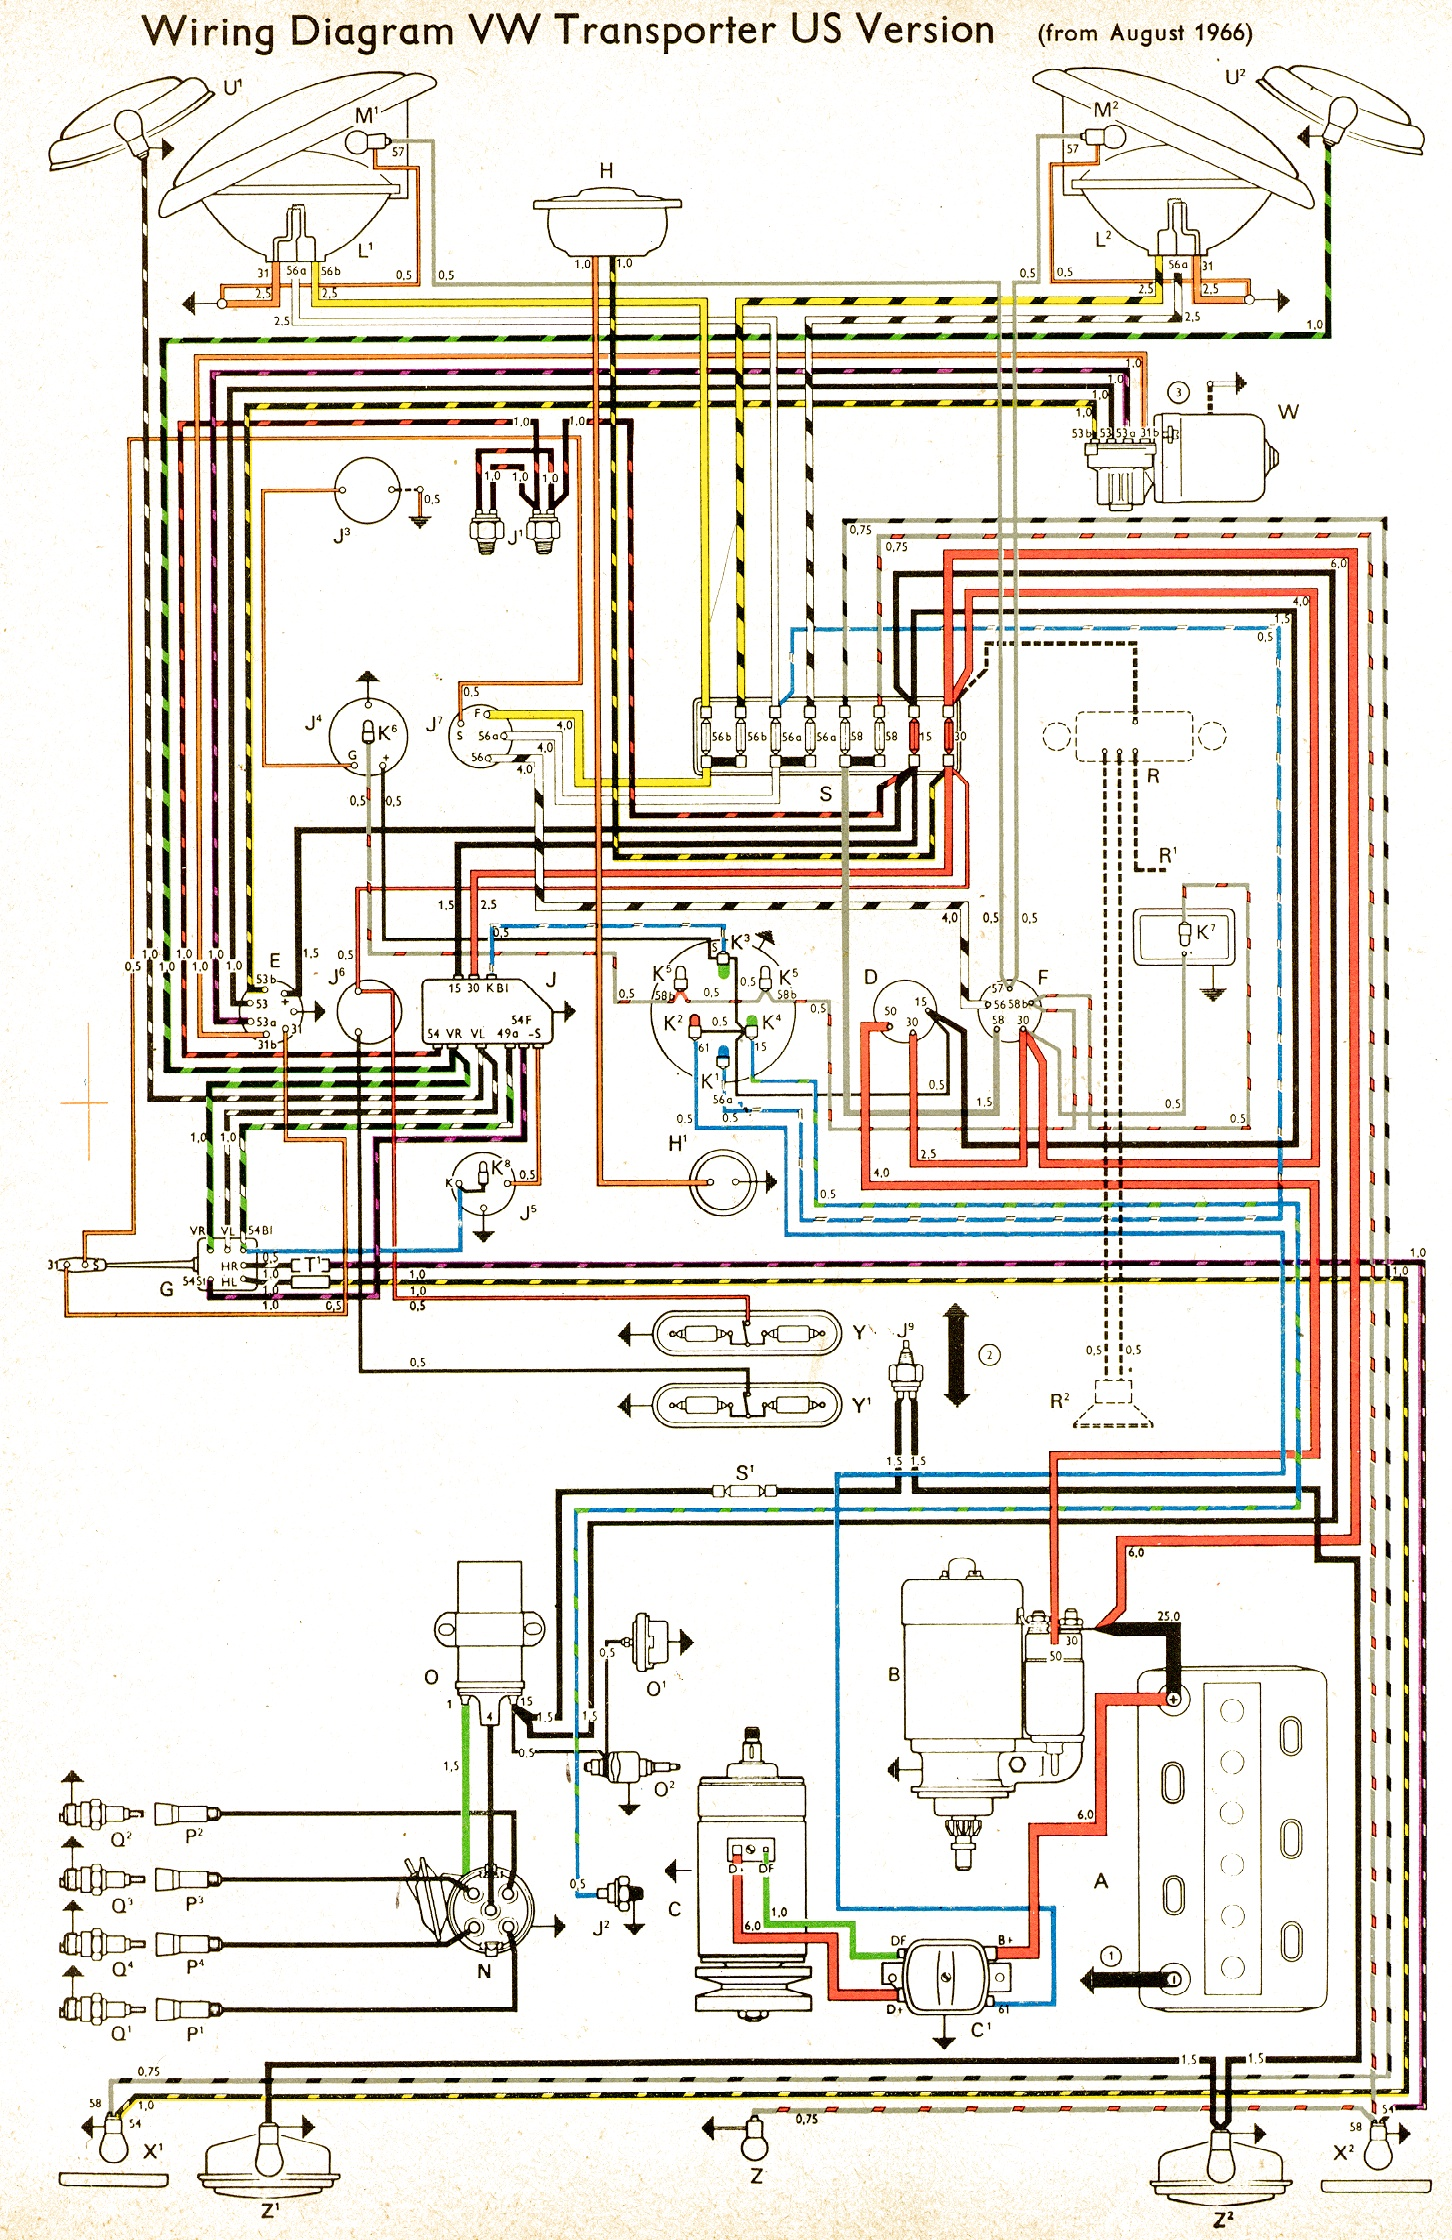 69 vw bug wire diagram wiring schematic wiring diagram 69 VW Bug Parts 69 vw bug wire diagram wiring schematic